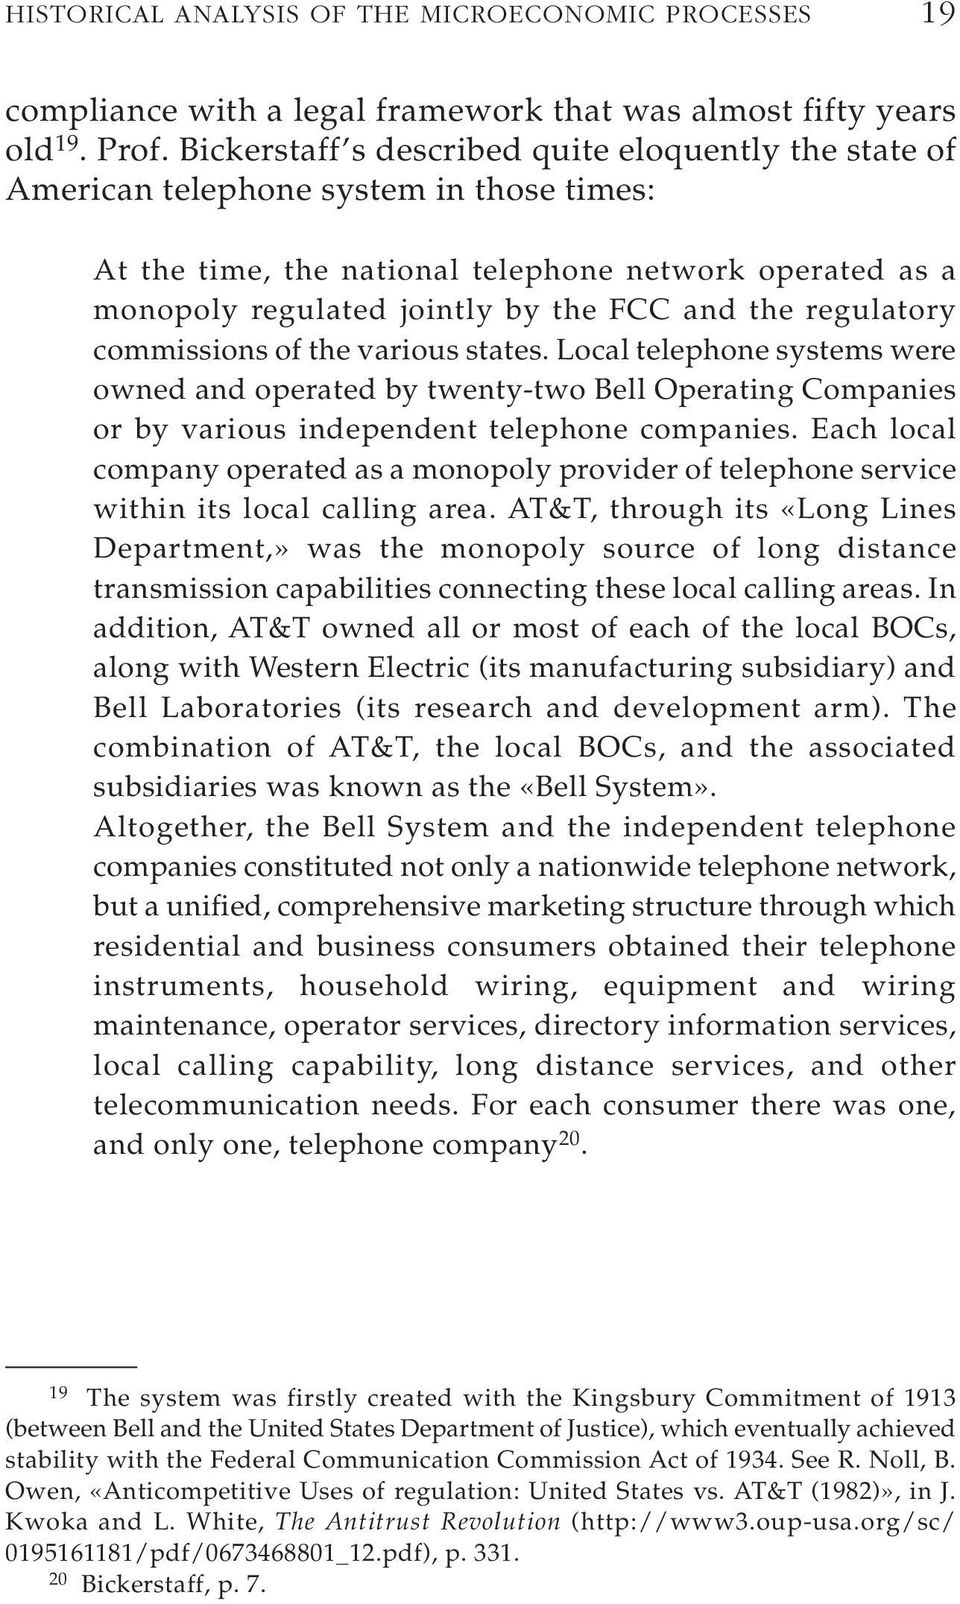 regulatory commissions of the various states. Local telephone systems were owned and operated by twenty-two Bell Operating Companies or by various independent telephone companies.